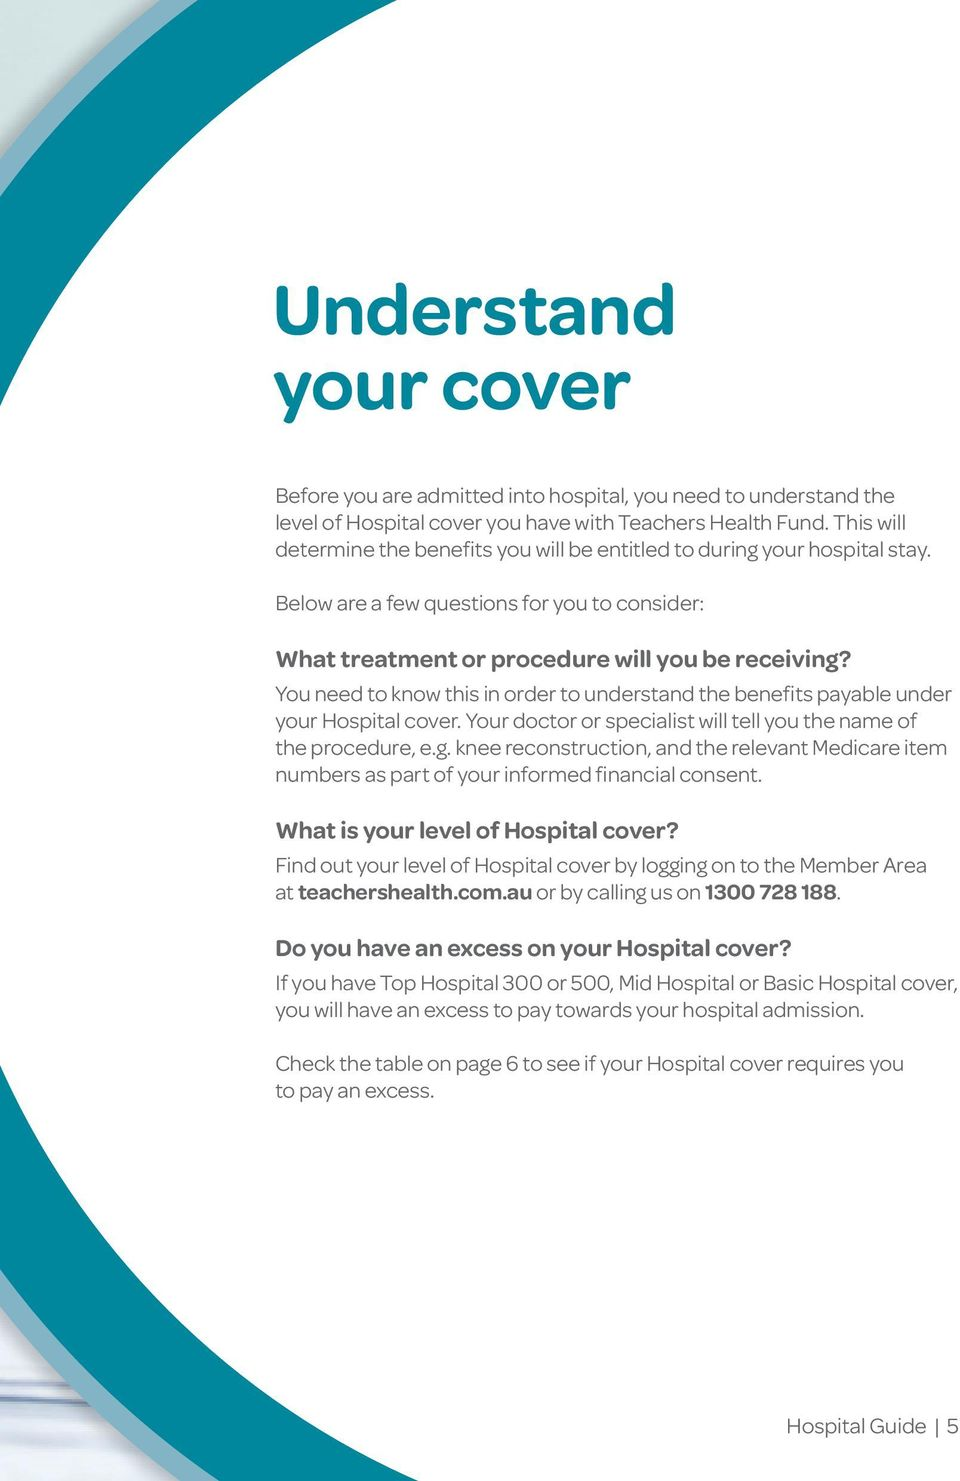 You need to know this in order to understand the benefits payable under your Hospital cover. Your doctor or specialist will tell you the name of the procedure, e.g.